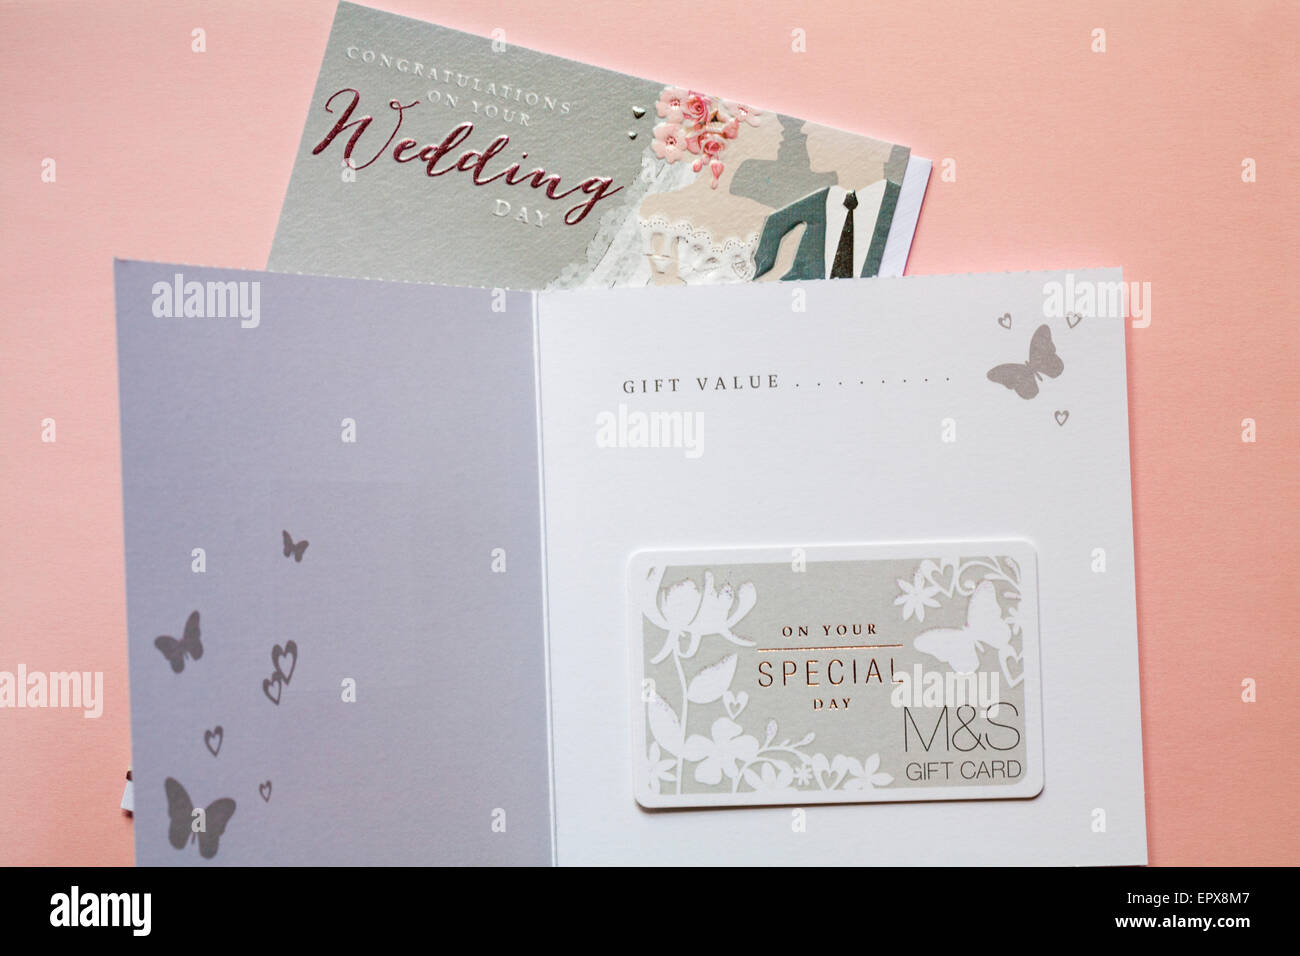 On Your Special Day Ms Wedding Gift Card Giftcard With Wedding Card